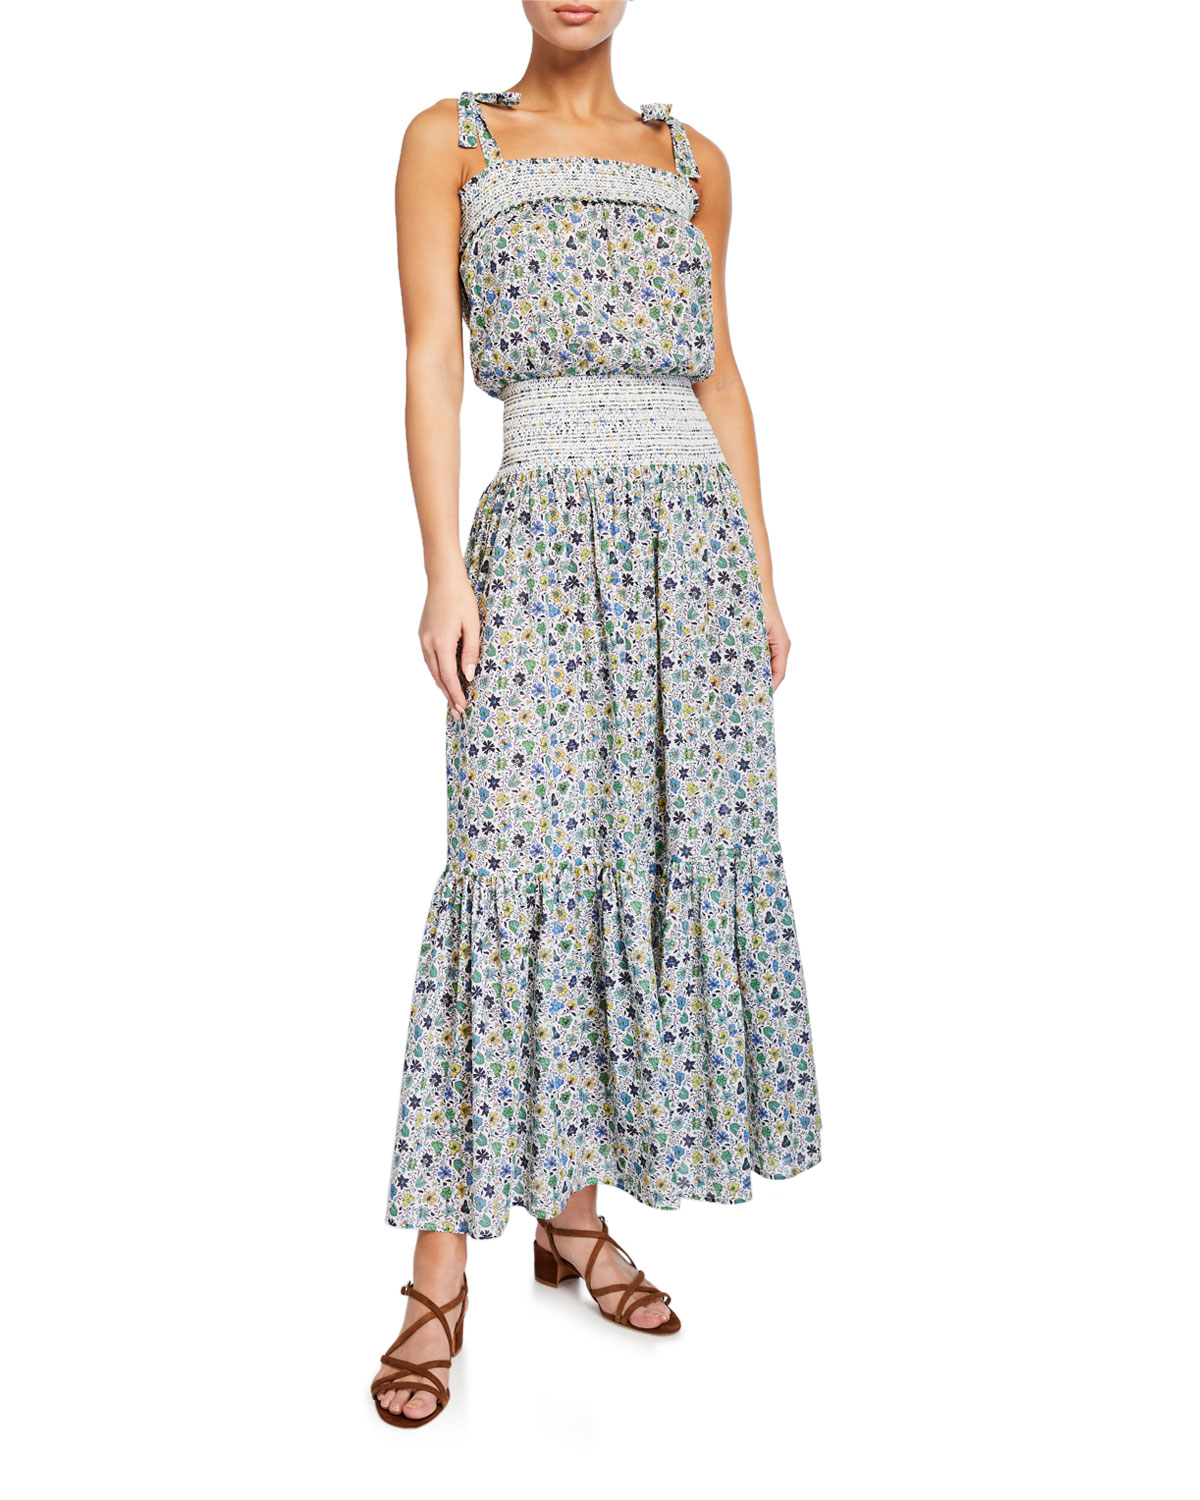 Tory Burch Dresses SMOCKED FLORAL-PRINT COVERUP DRESS